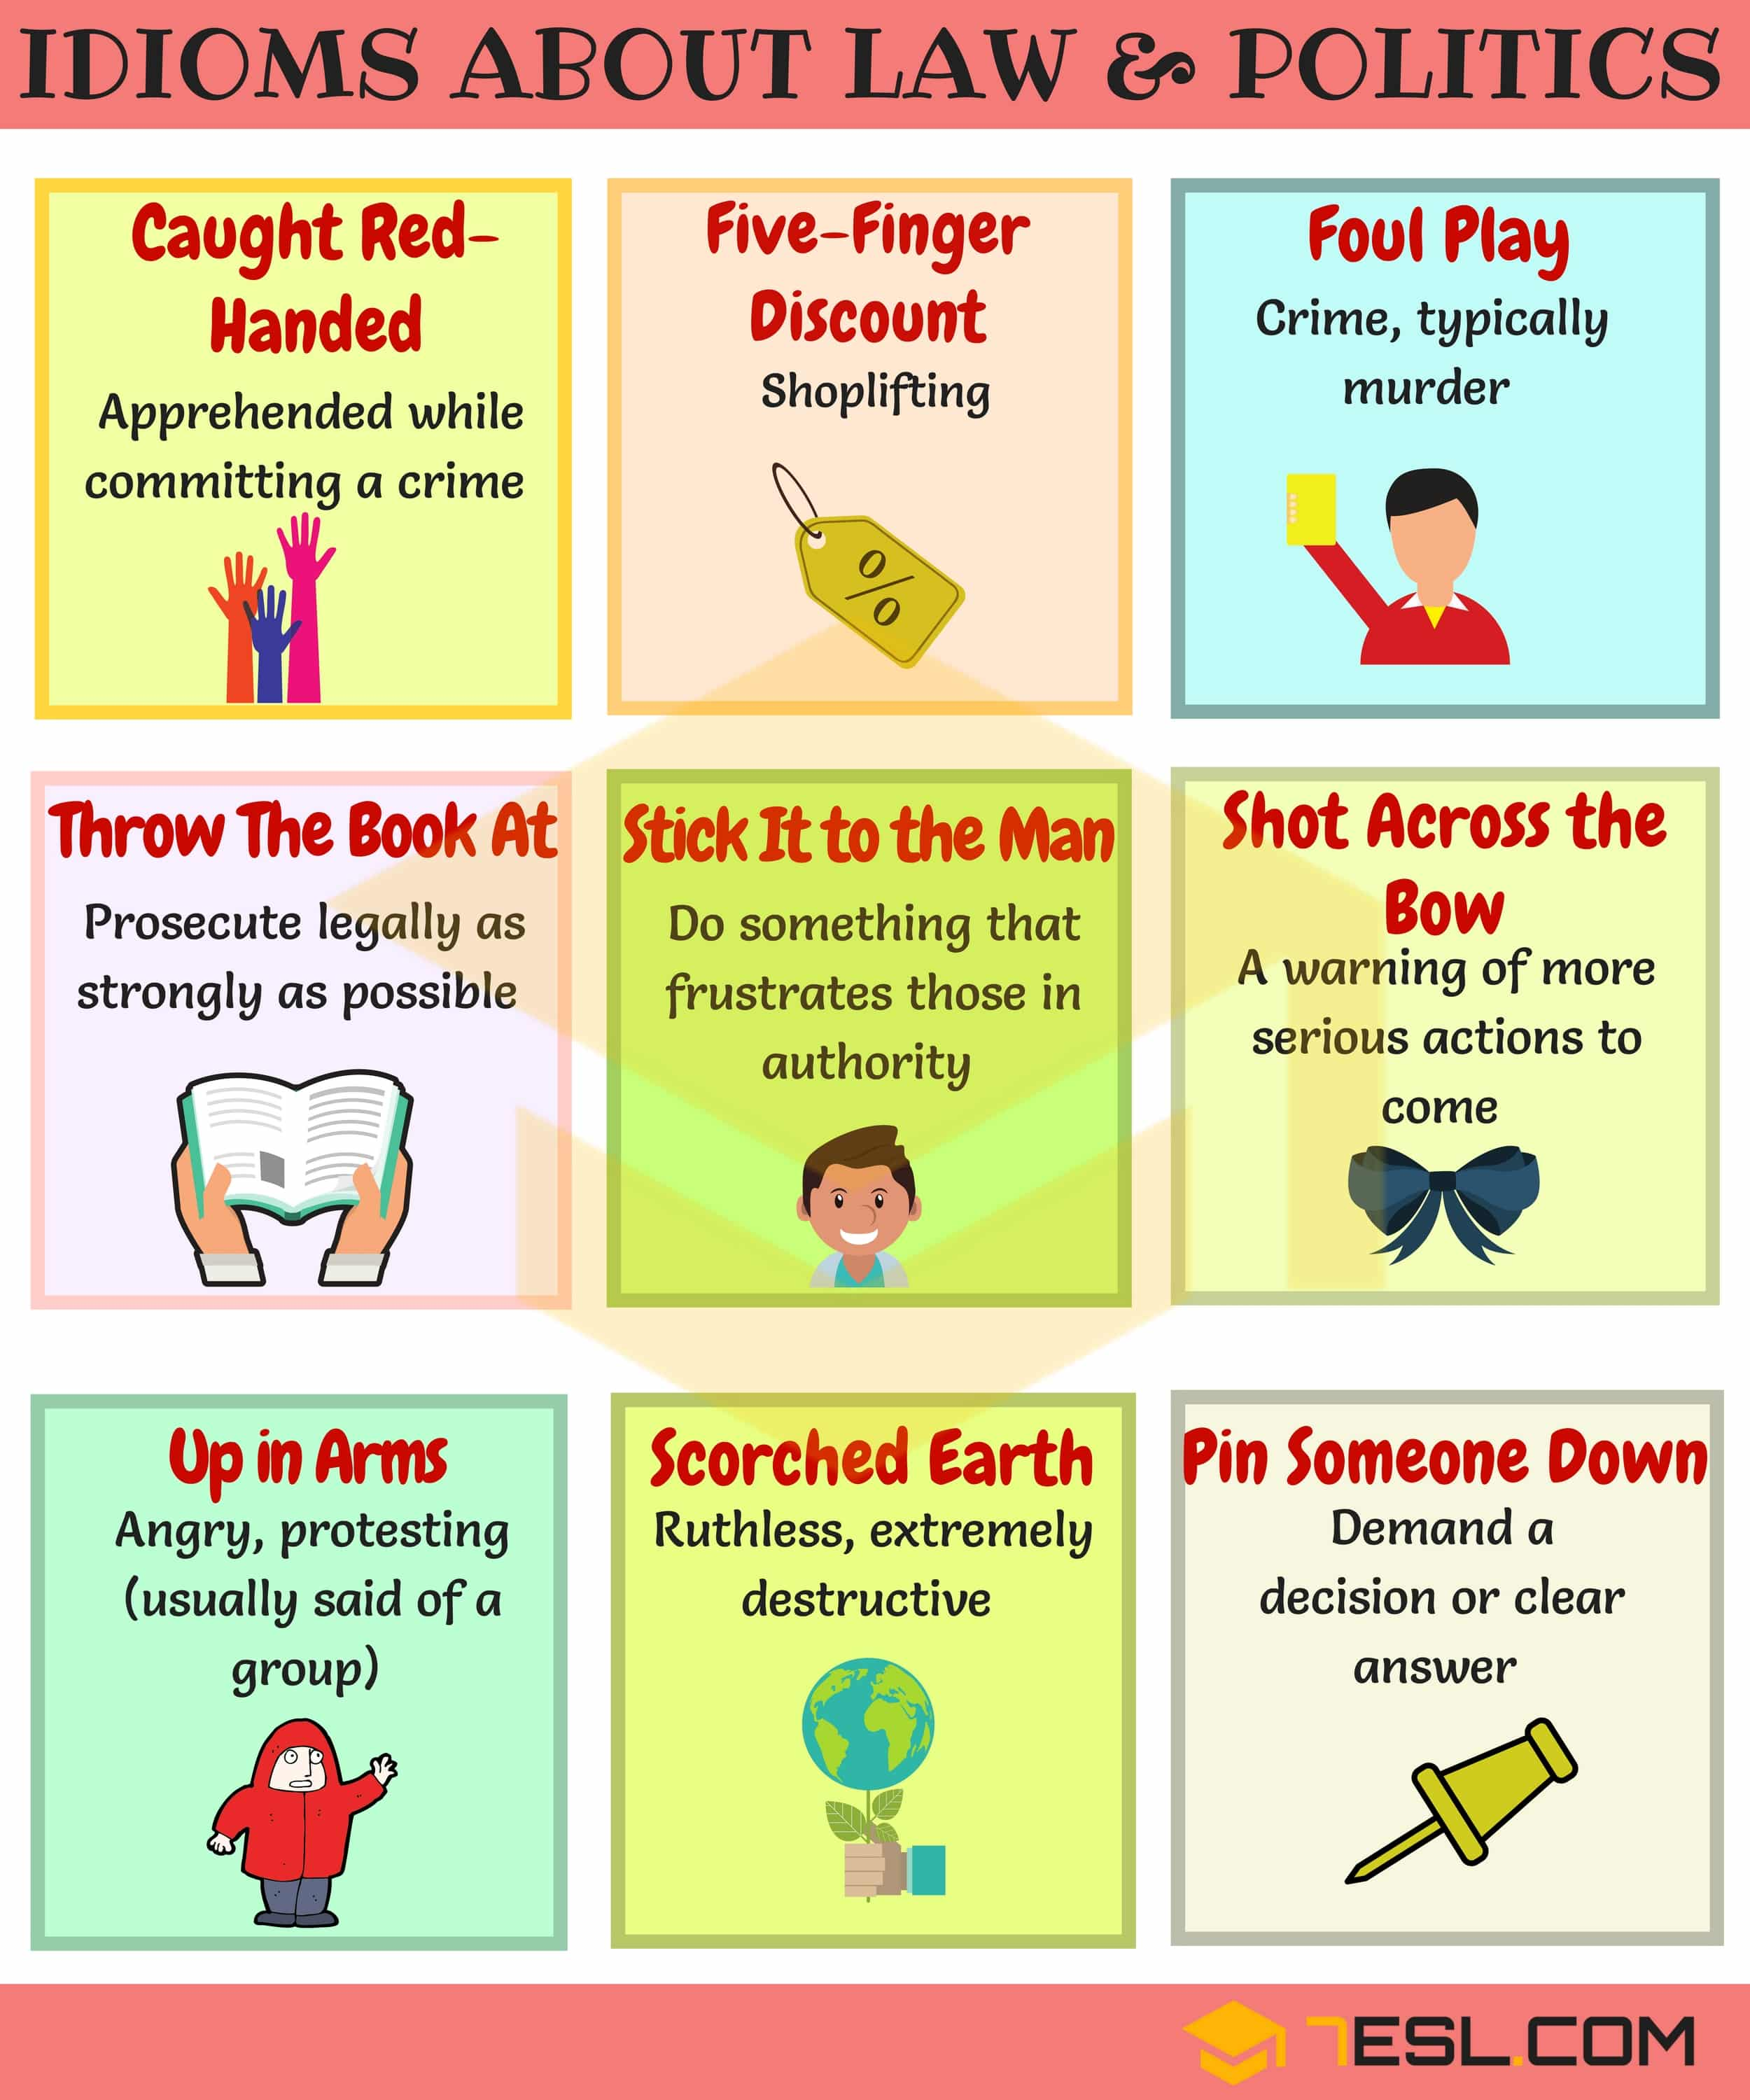 Common Idioms about Politics in English | Politics Idioms